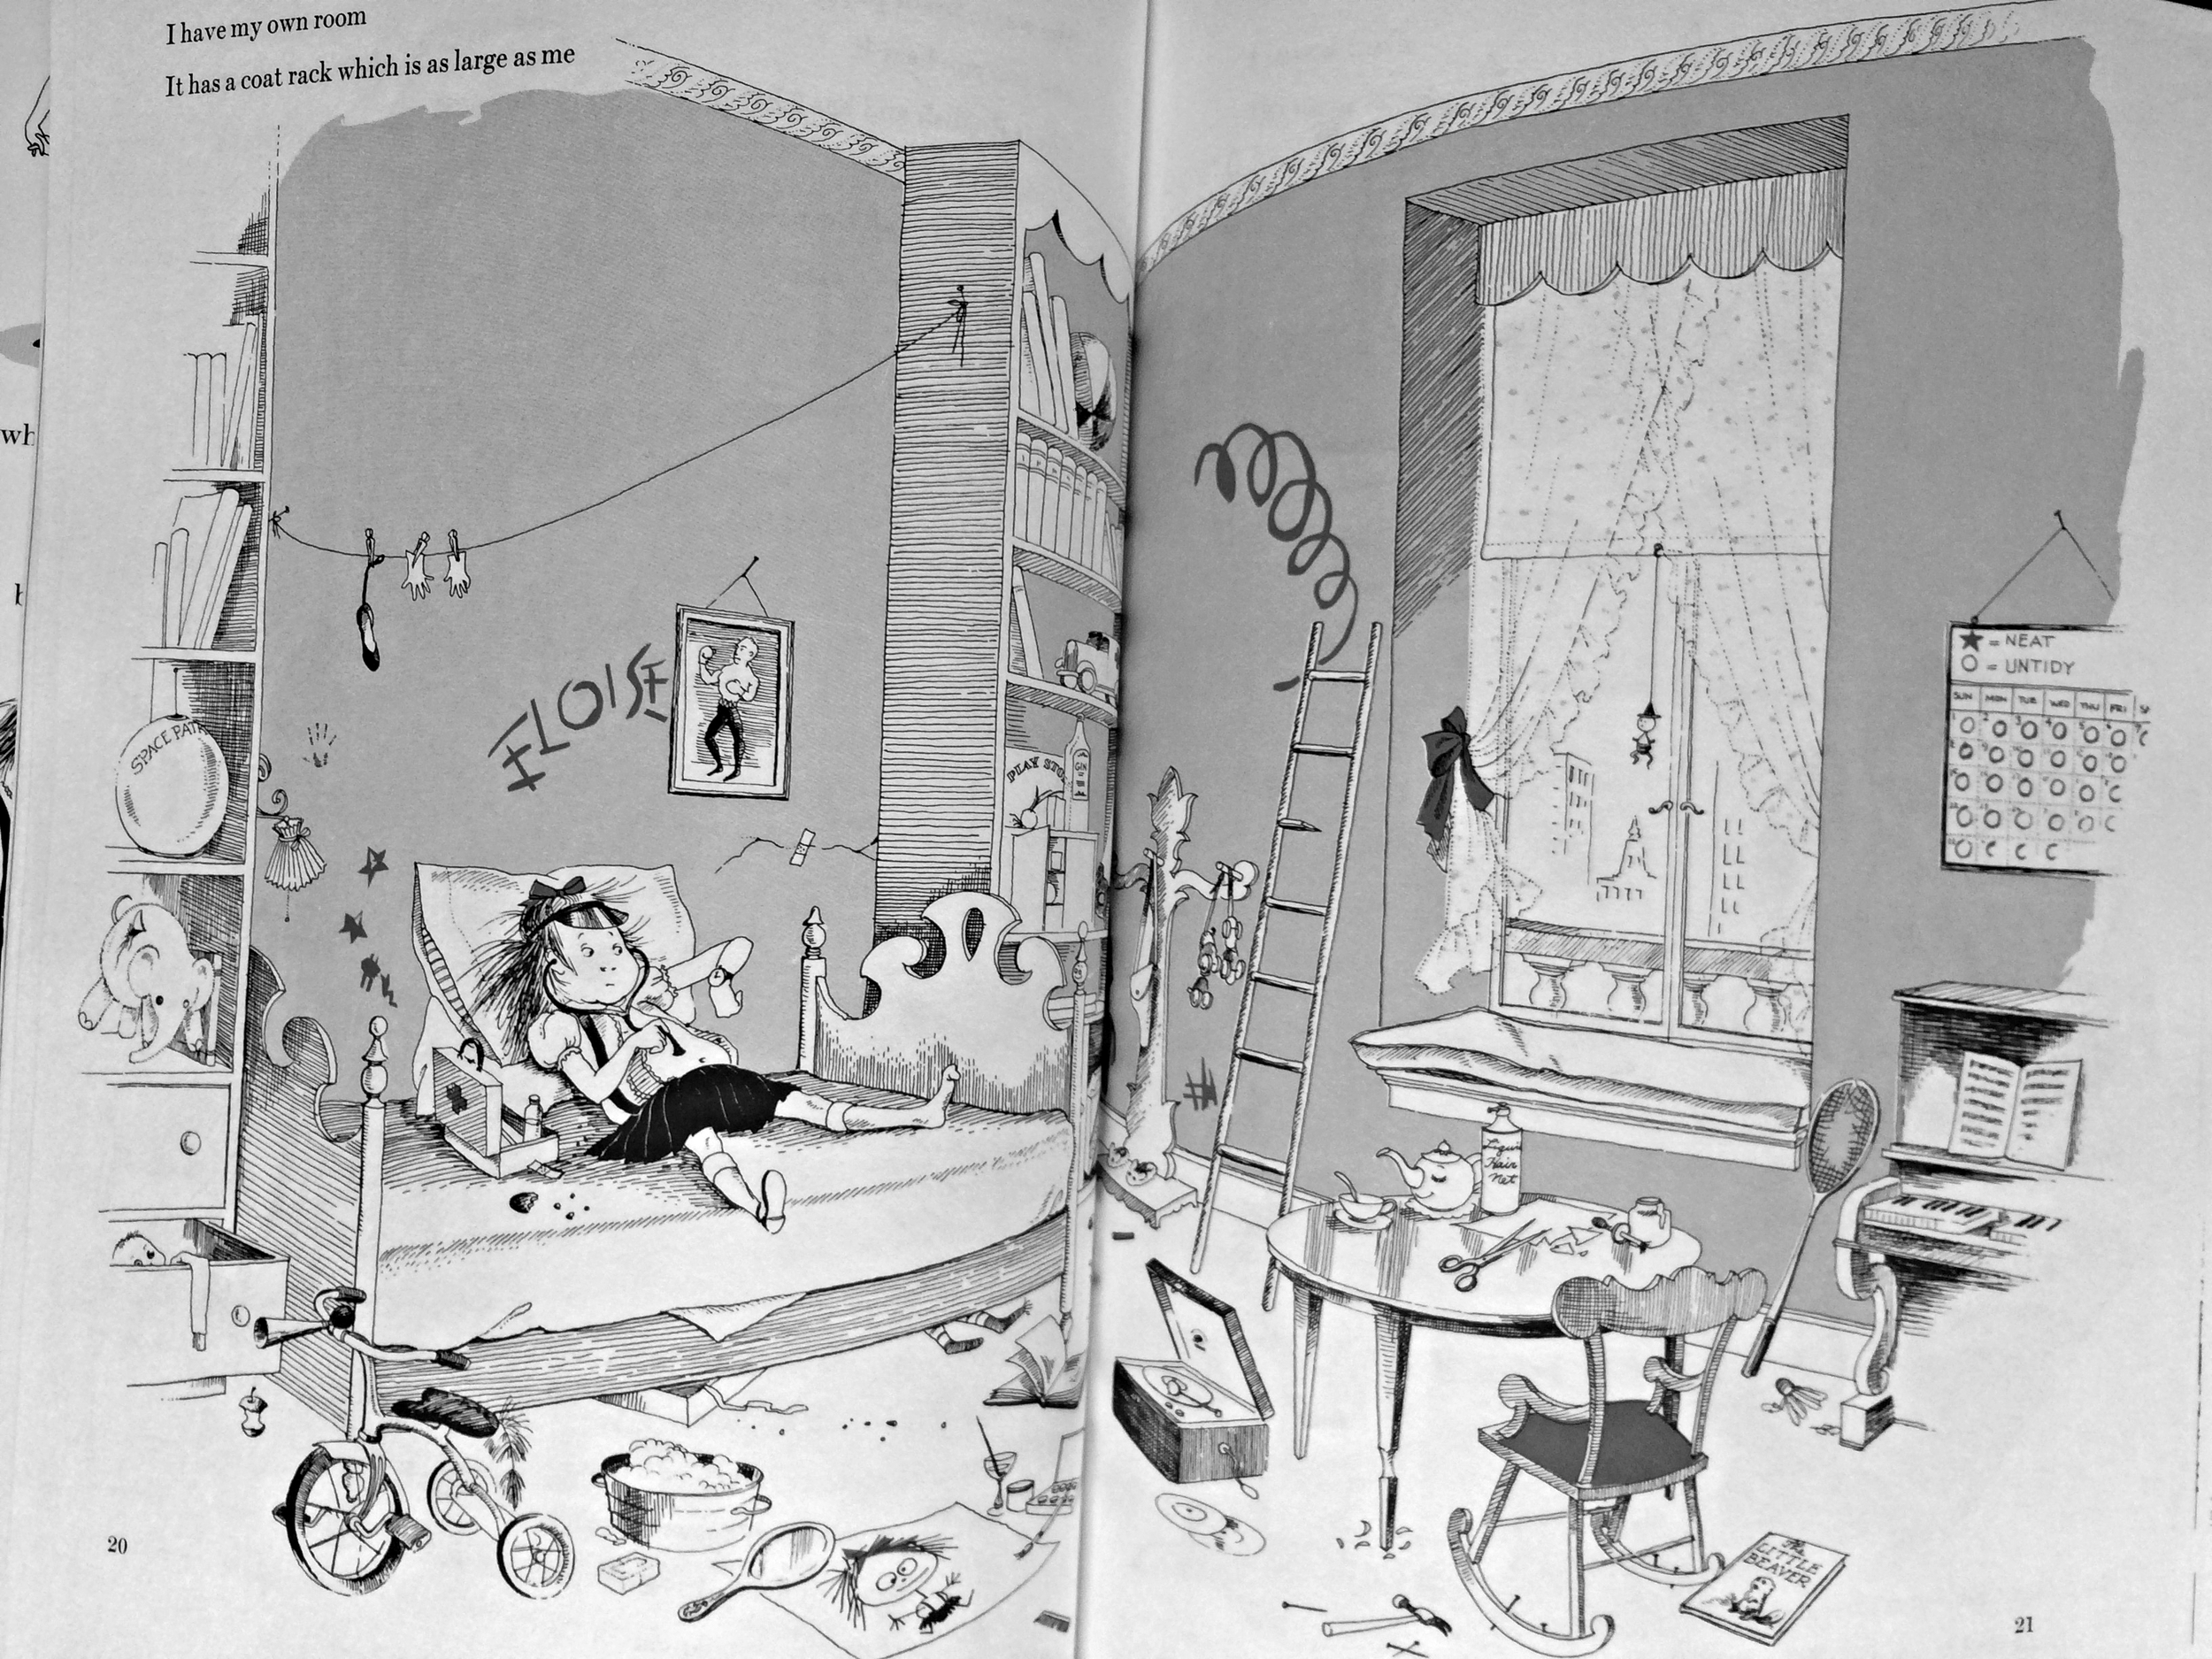 I am all for the real thing, but find  Eloise- inspired  bedrooms   rawther  gross.